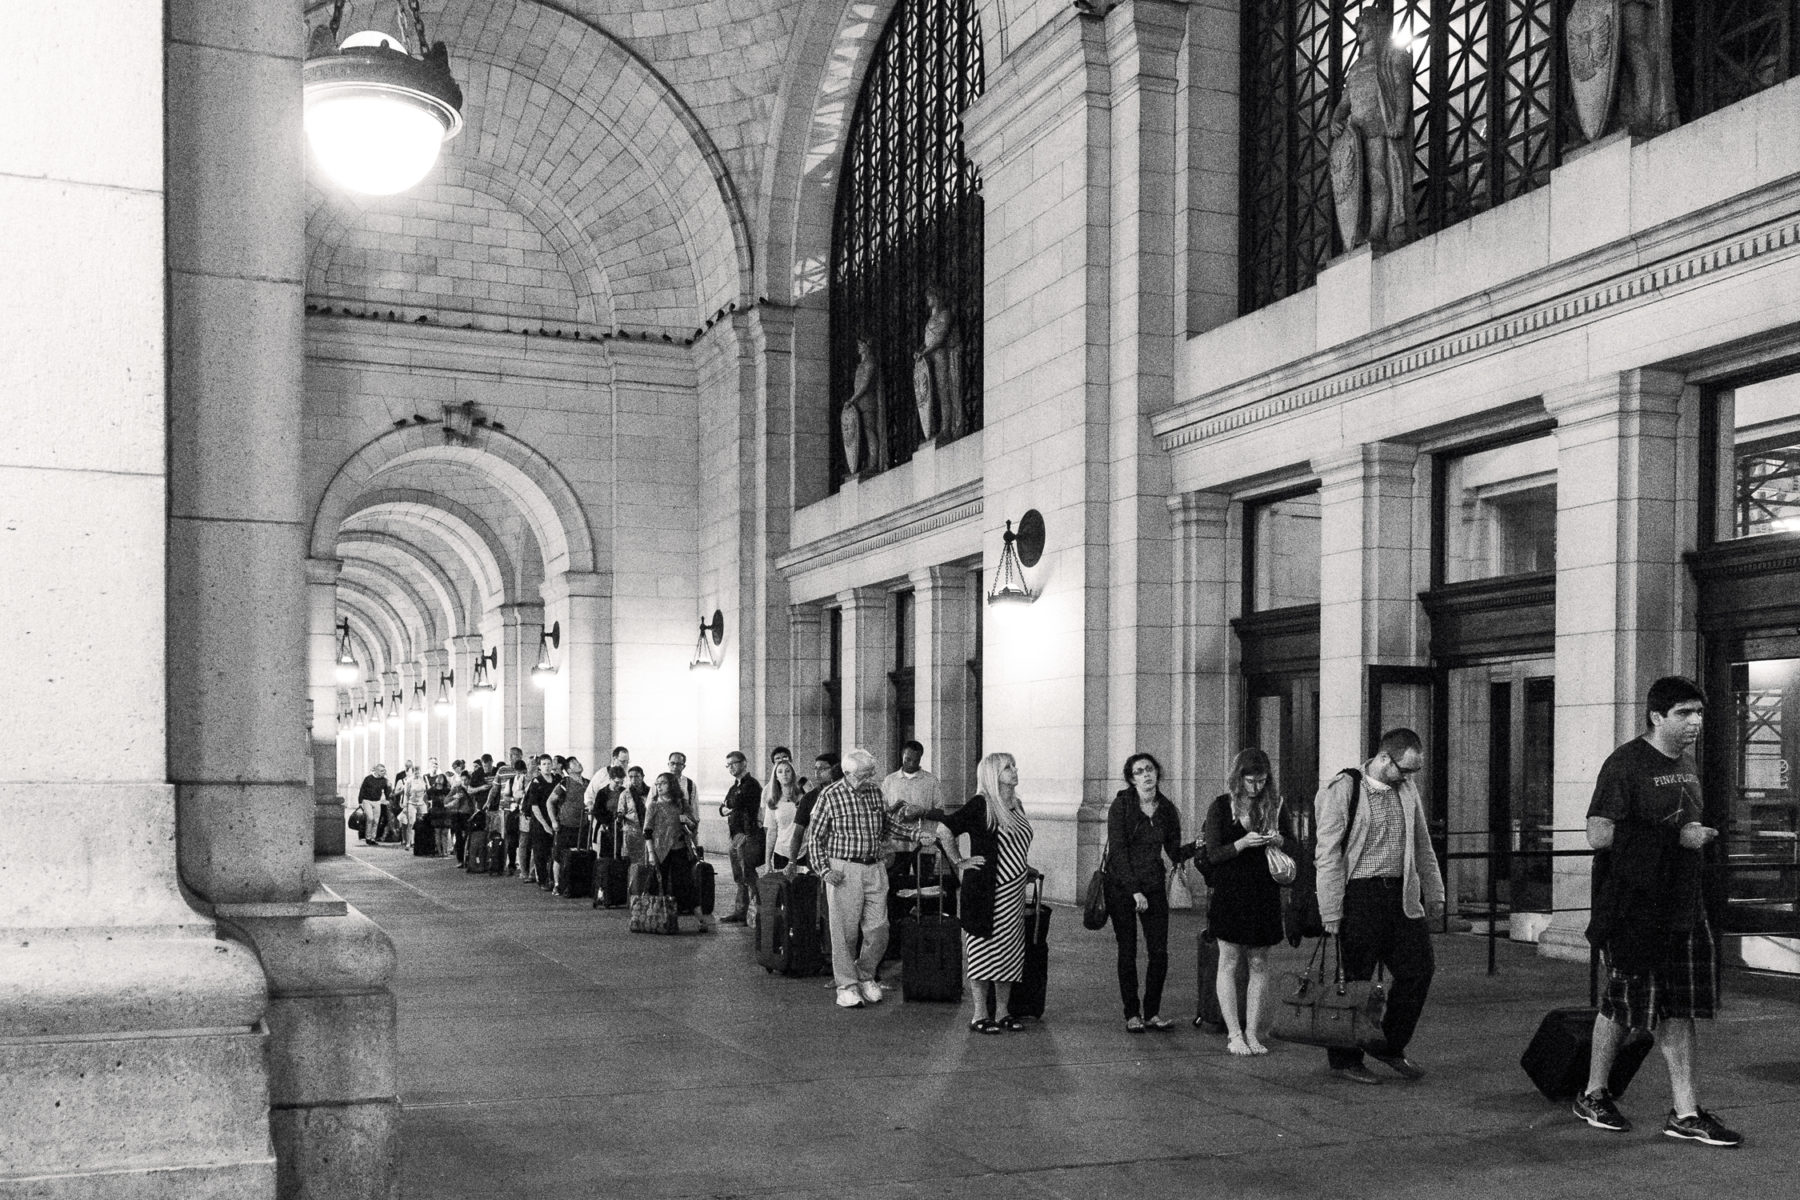 passengers waiting in the cab line at Union Station